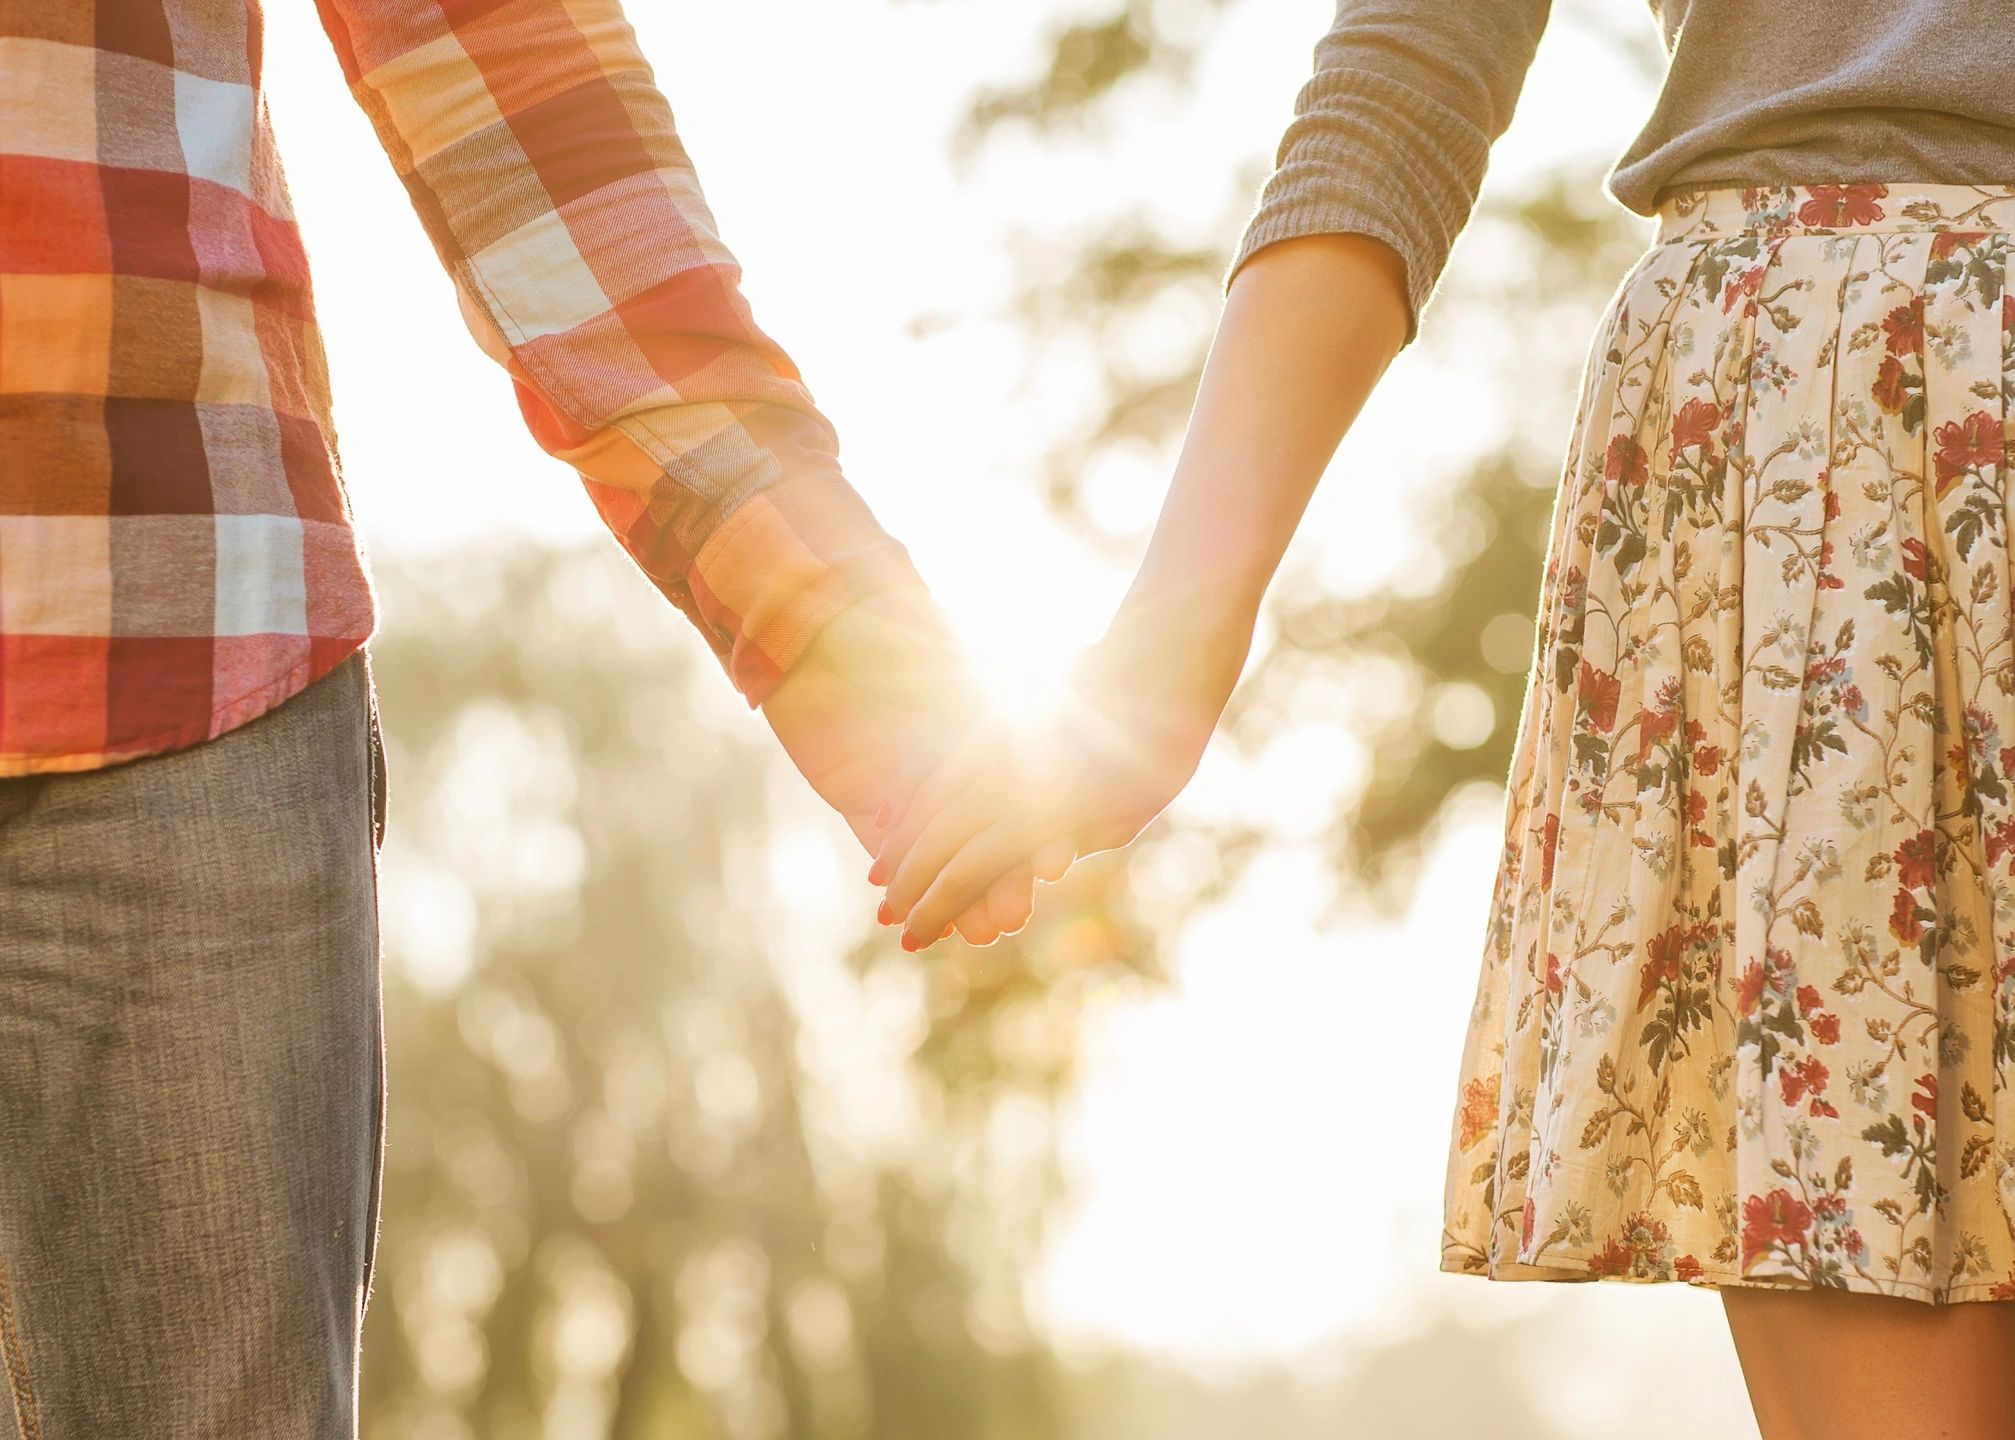 Marriage and the Perfect Partner